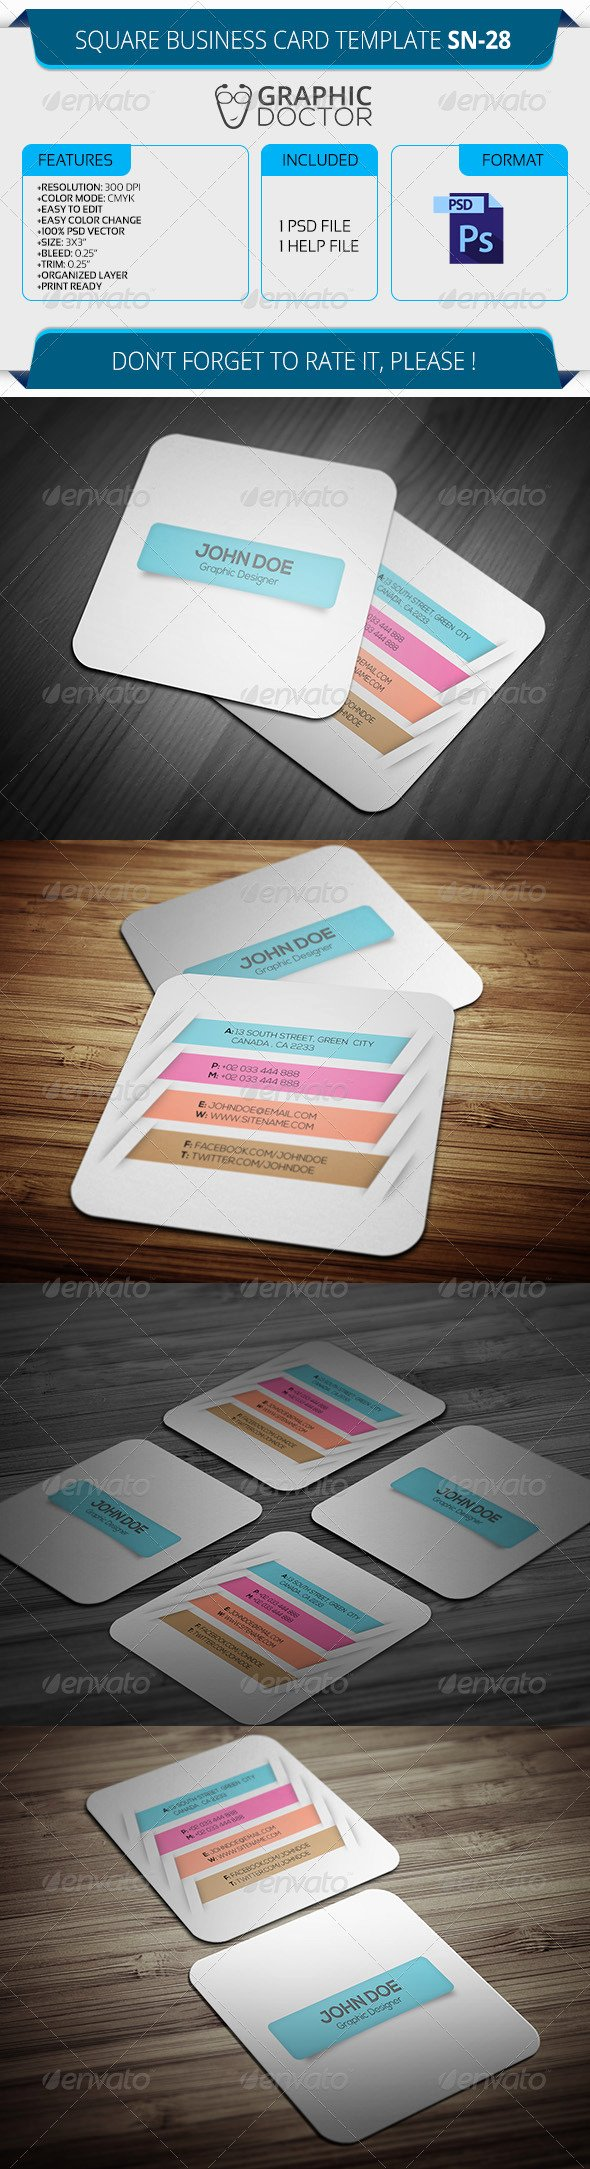 Square Business Card Template Free Best Of Square Business Card Template Sn 28 by Graphicdoctor